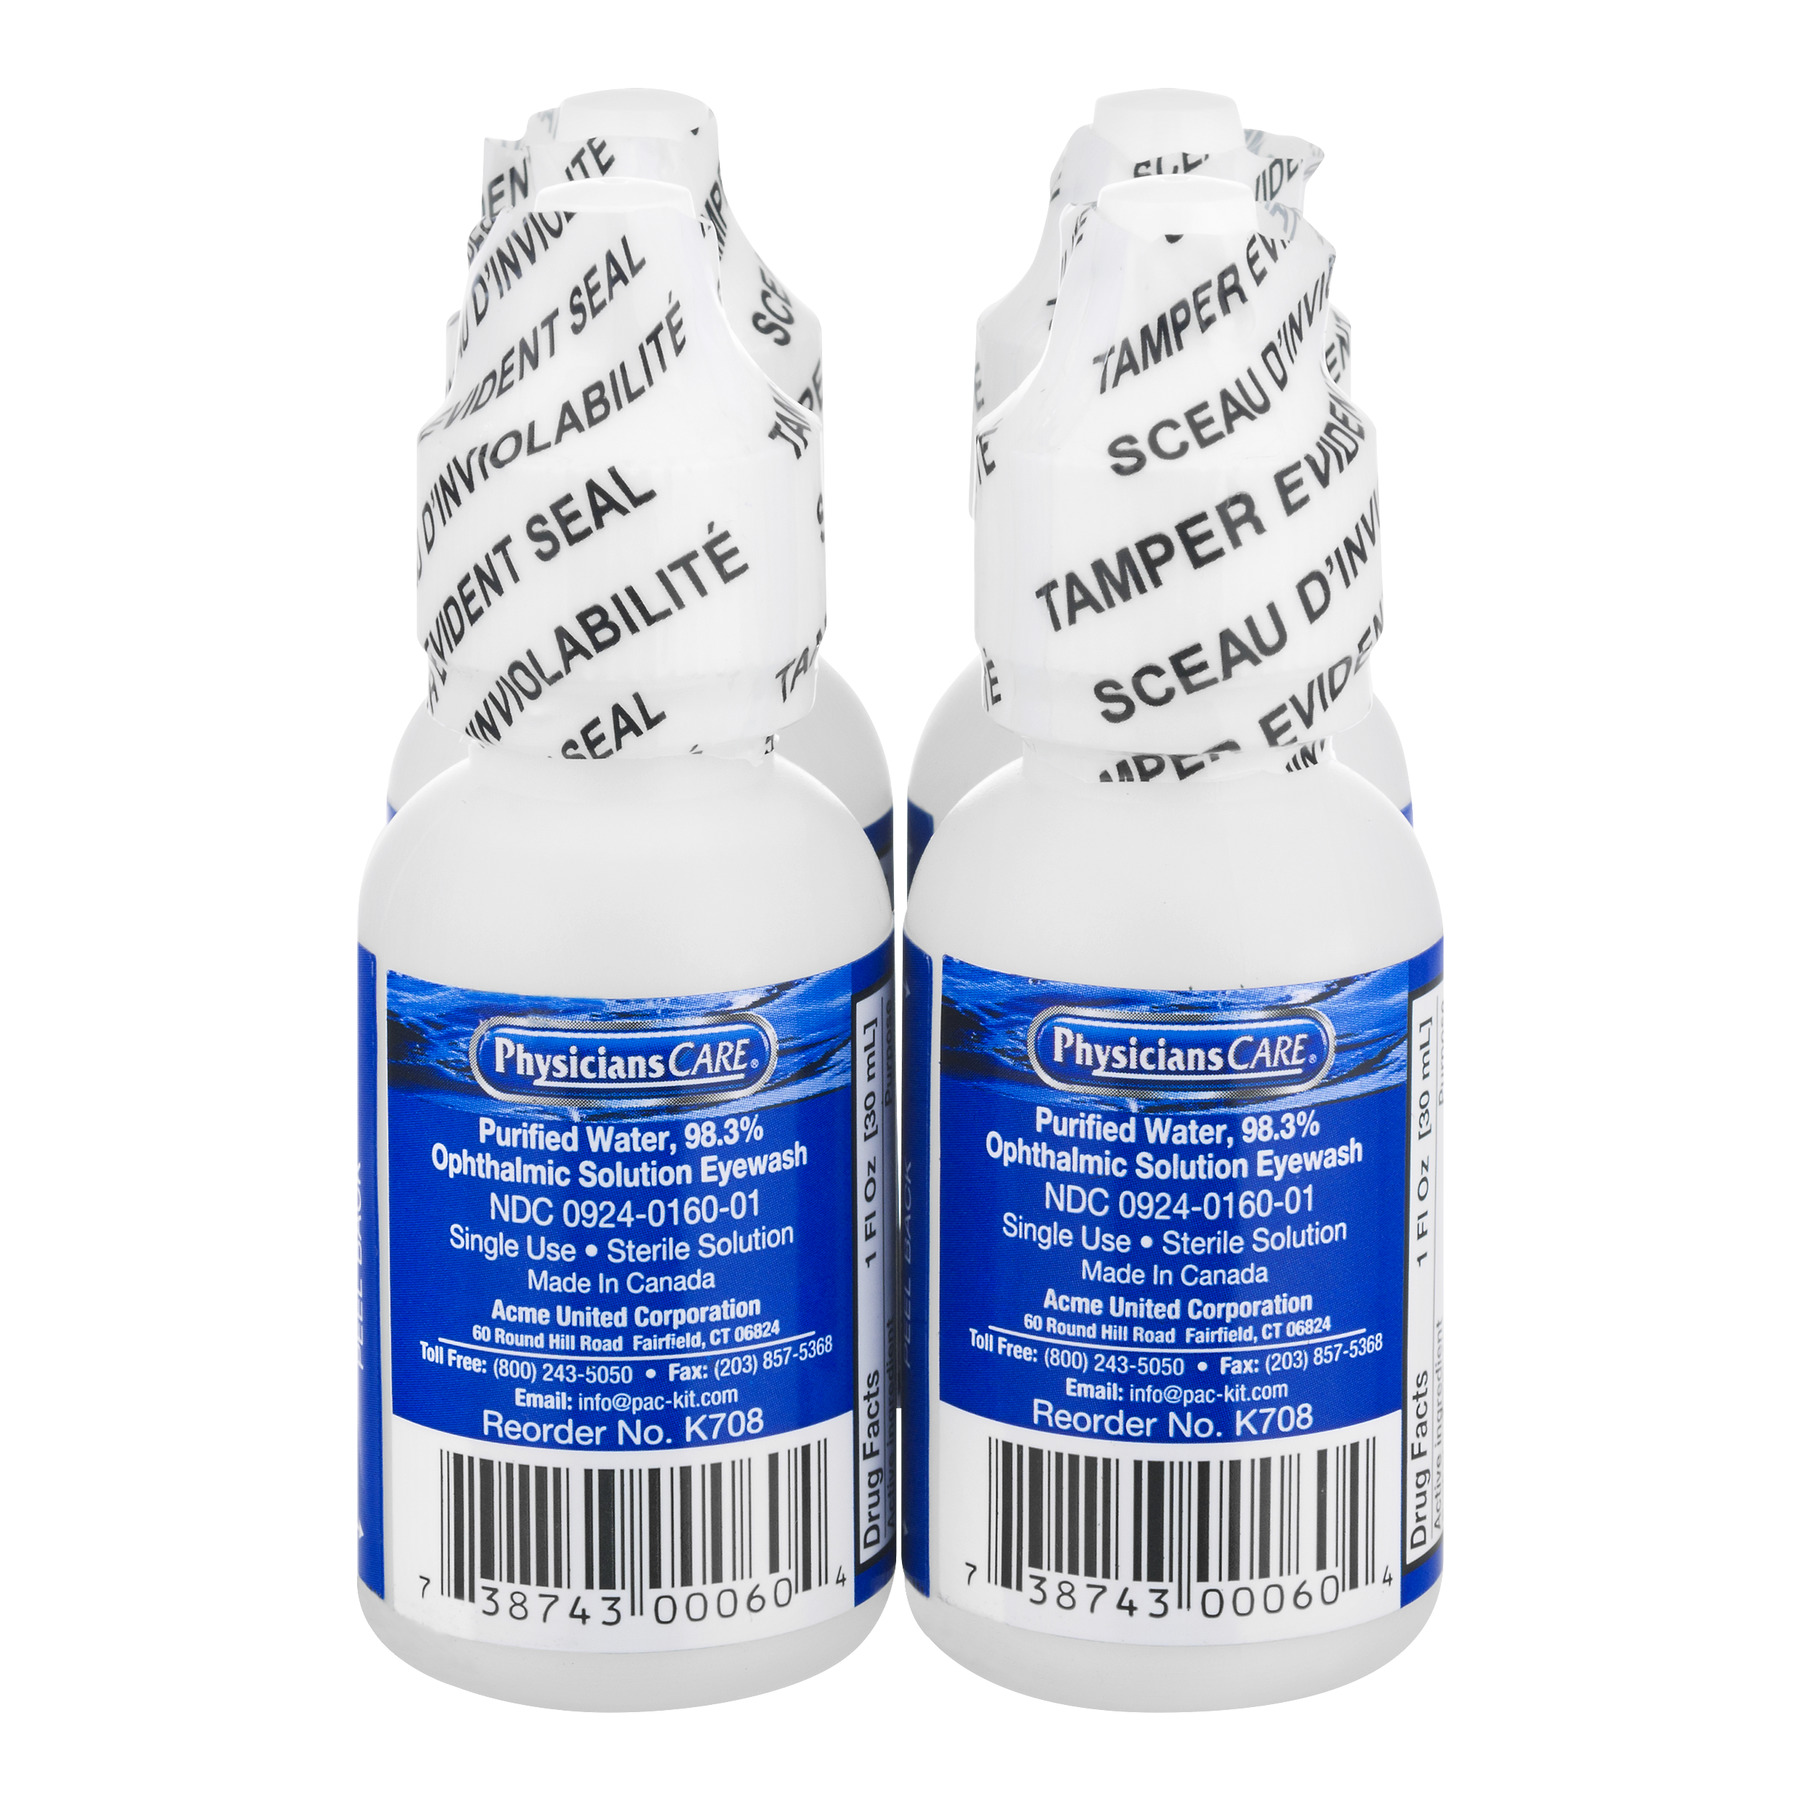 PhysiciansCare Eye Wash Bottle, 1 oz. Screw Cap (4 Count)